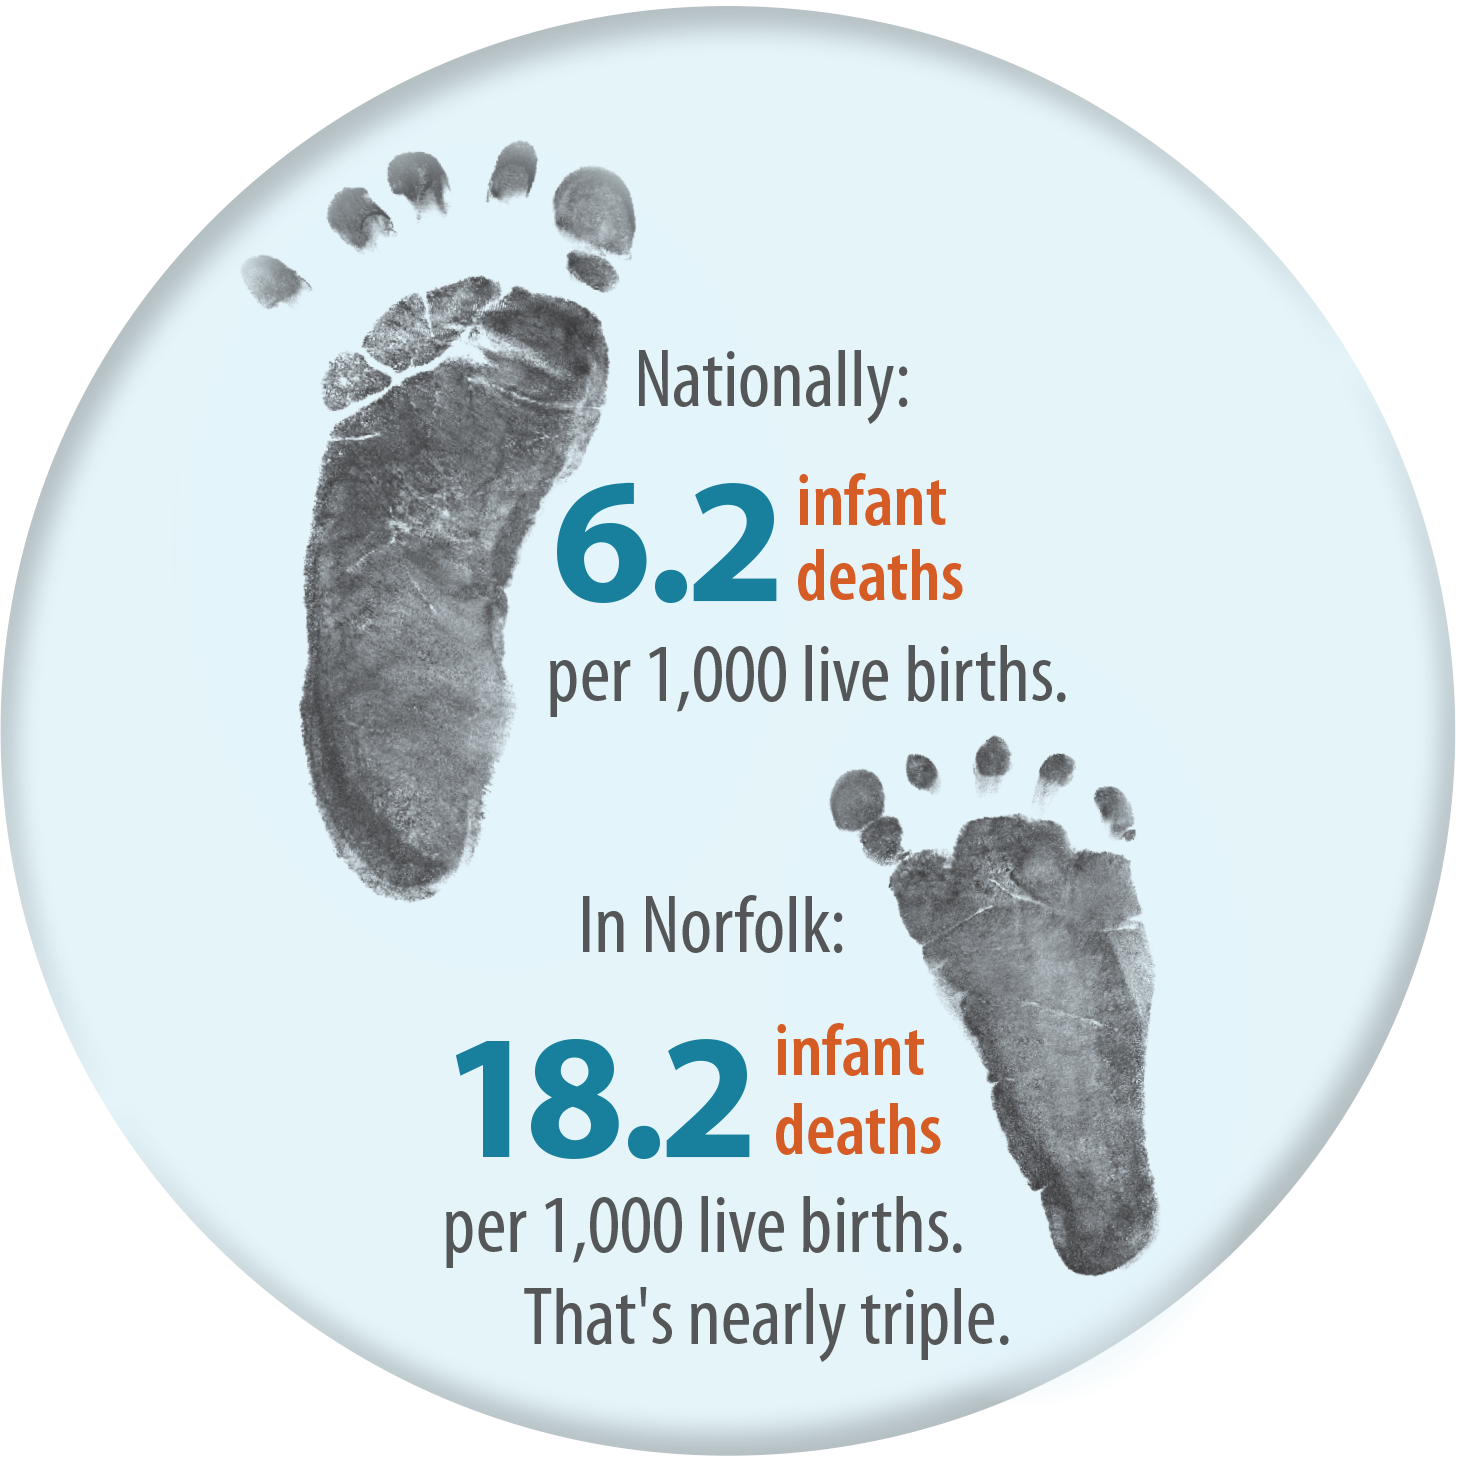 Nationally: 6.2 infant deaths per 1,000 live births. In Norfolk: 18.2 infant deaths per 1,000 live births. That's nearly triple.